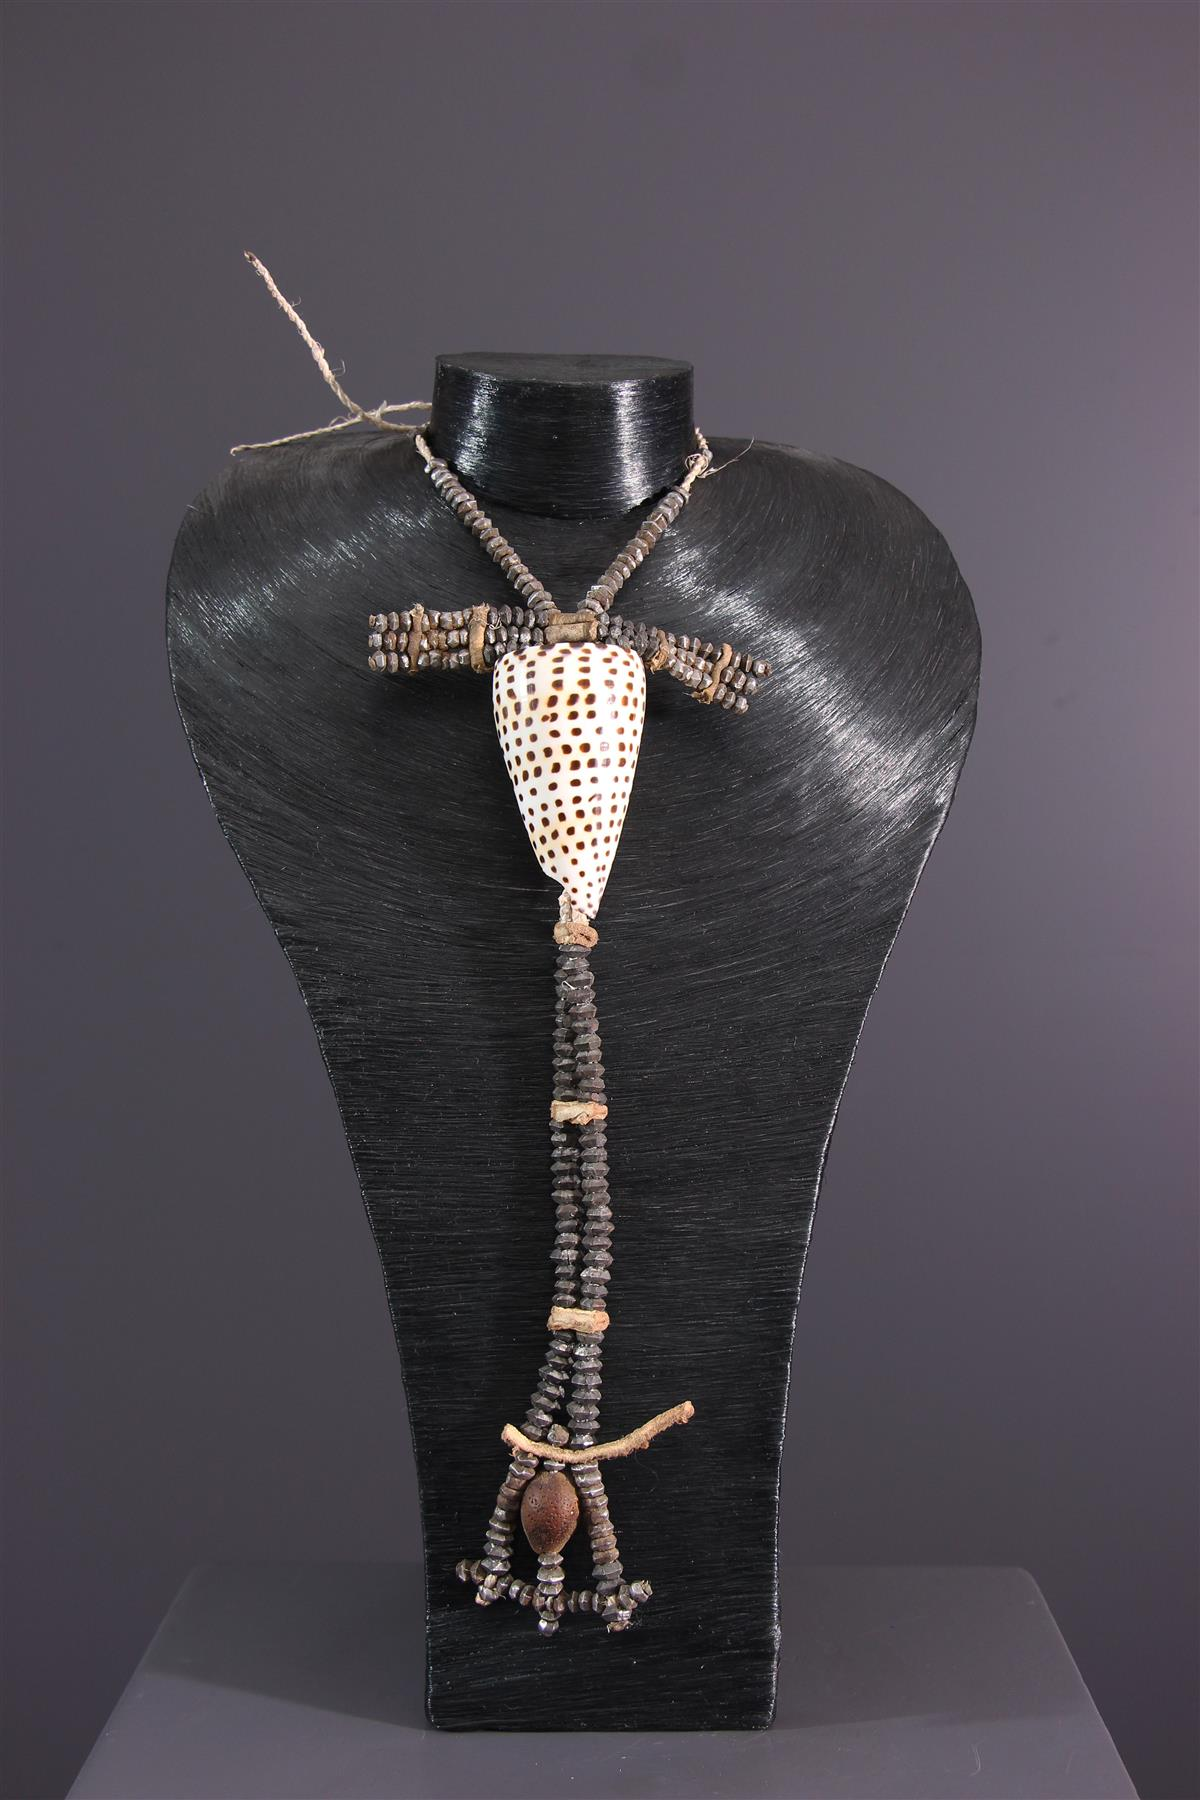 Himba necklace - African art